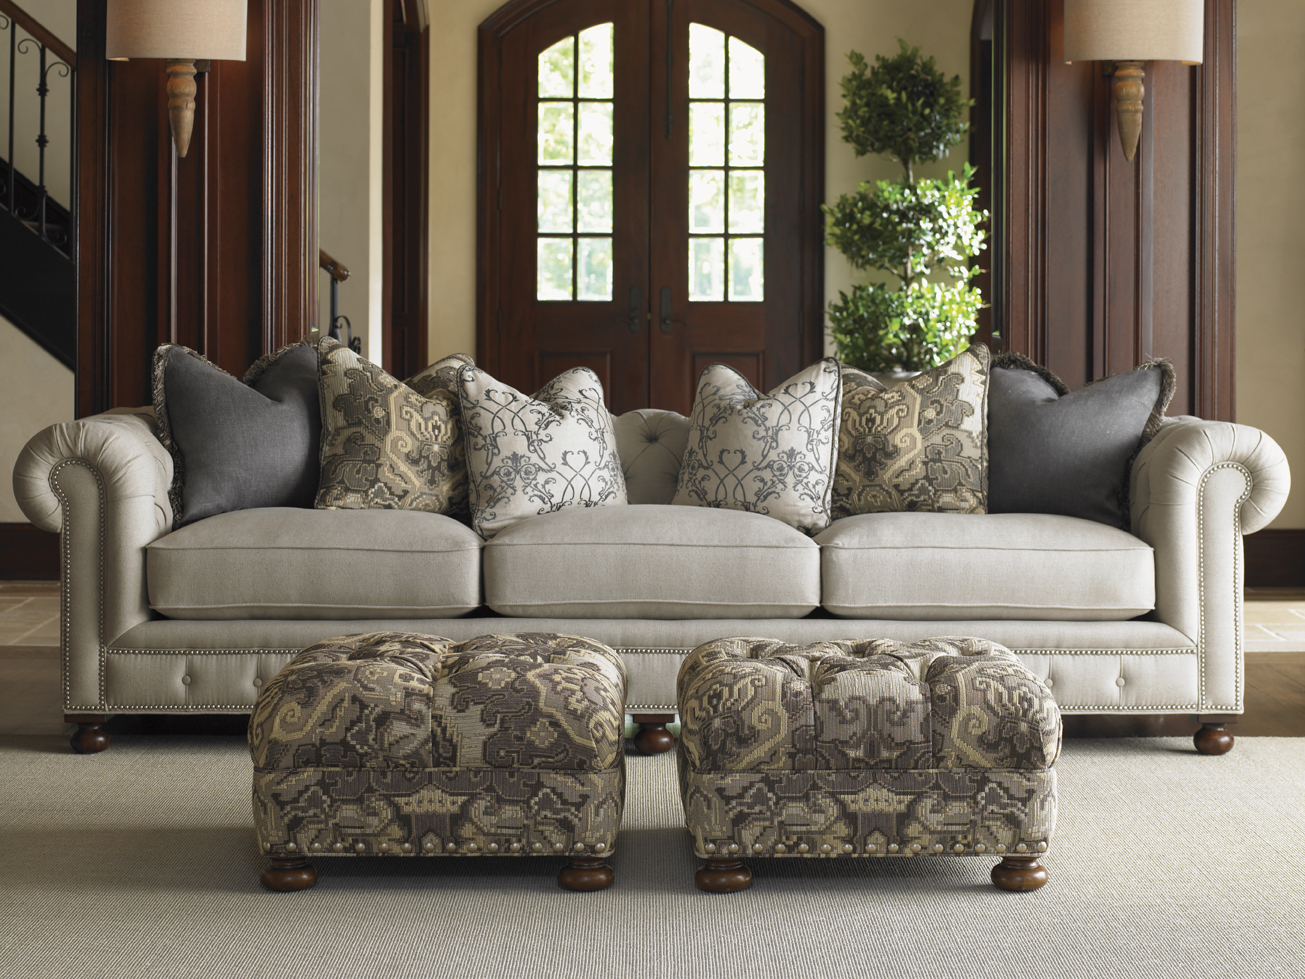 living room design with sprintz furniture with sofa and floral cushion plus wheat floor ideas